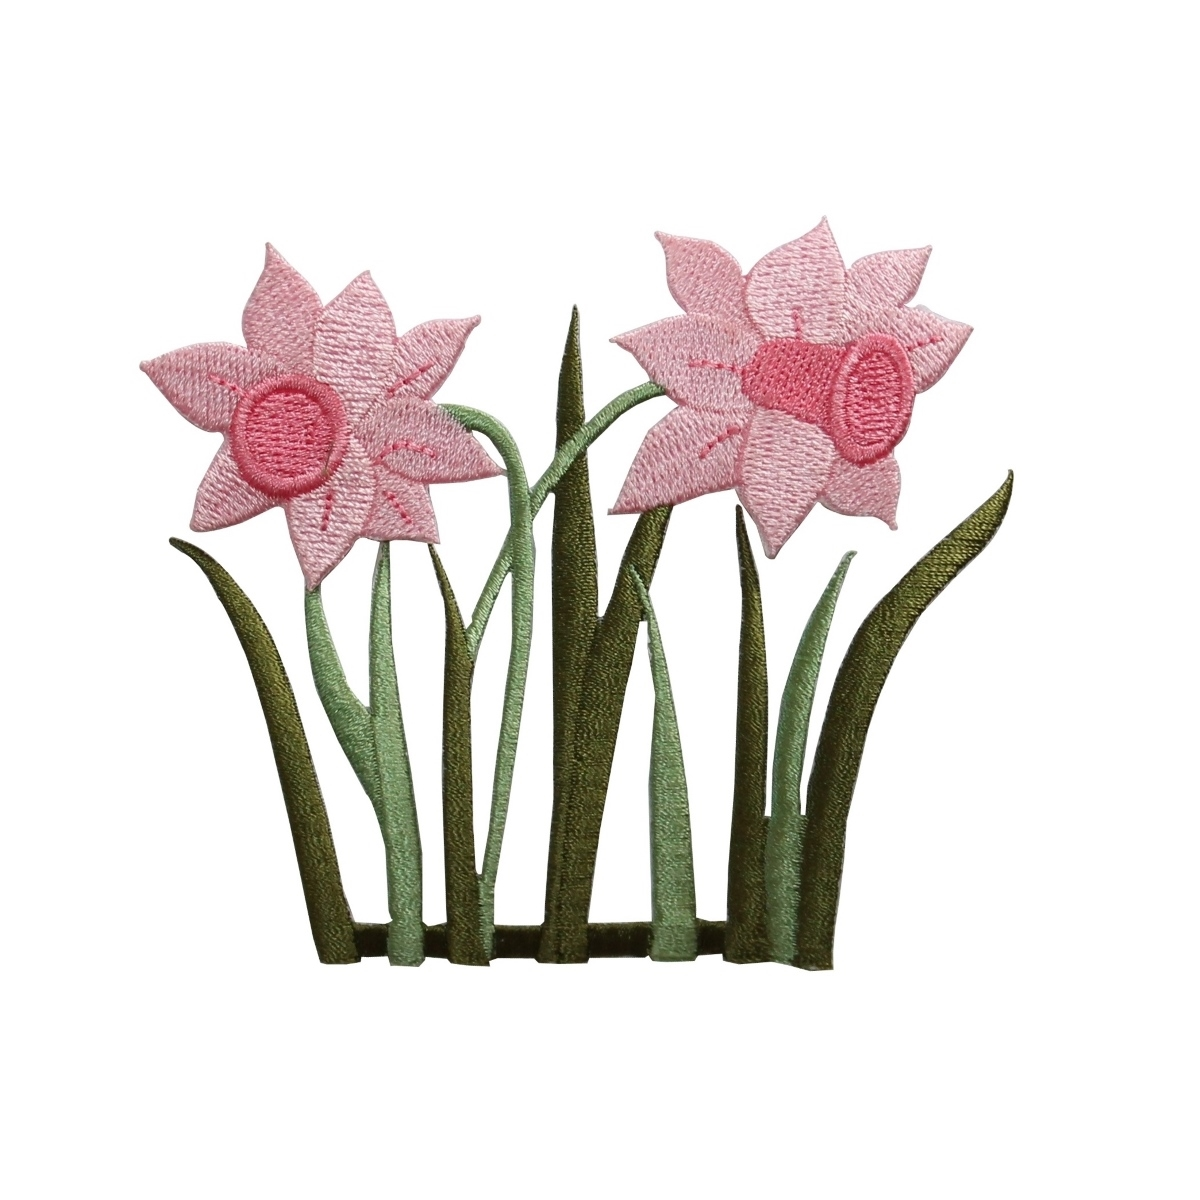 ID 6294 Pink Daffodil Flowers Patch Garden Blossom Embroidered Iron On Applique